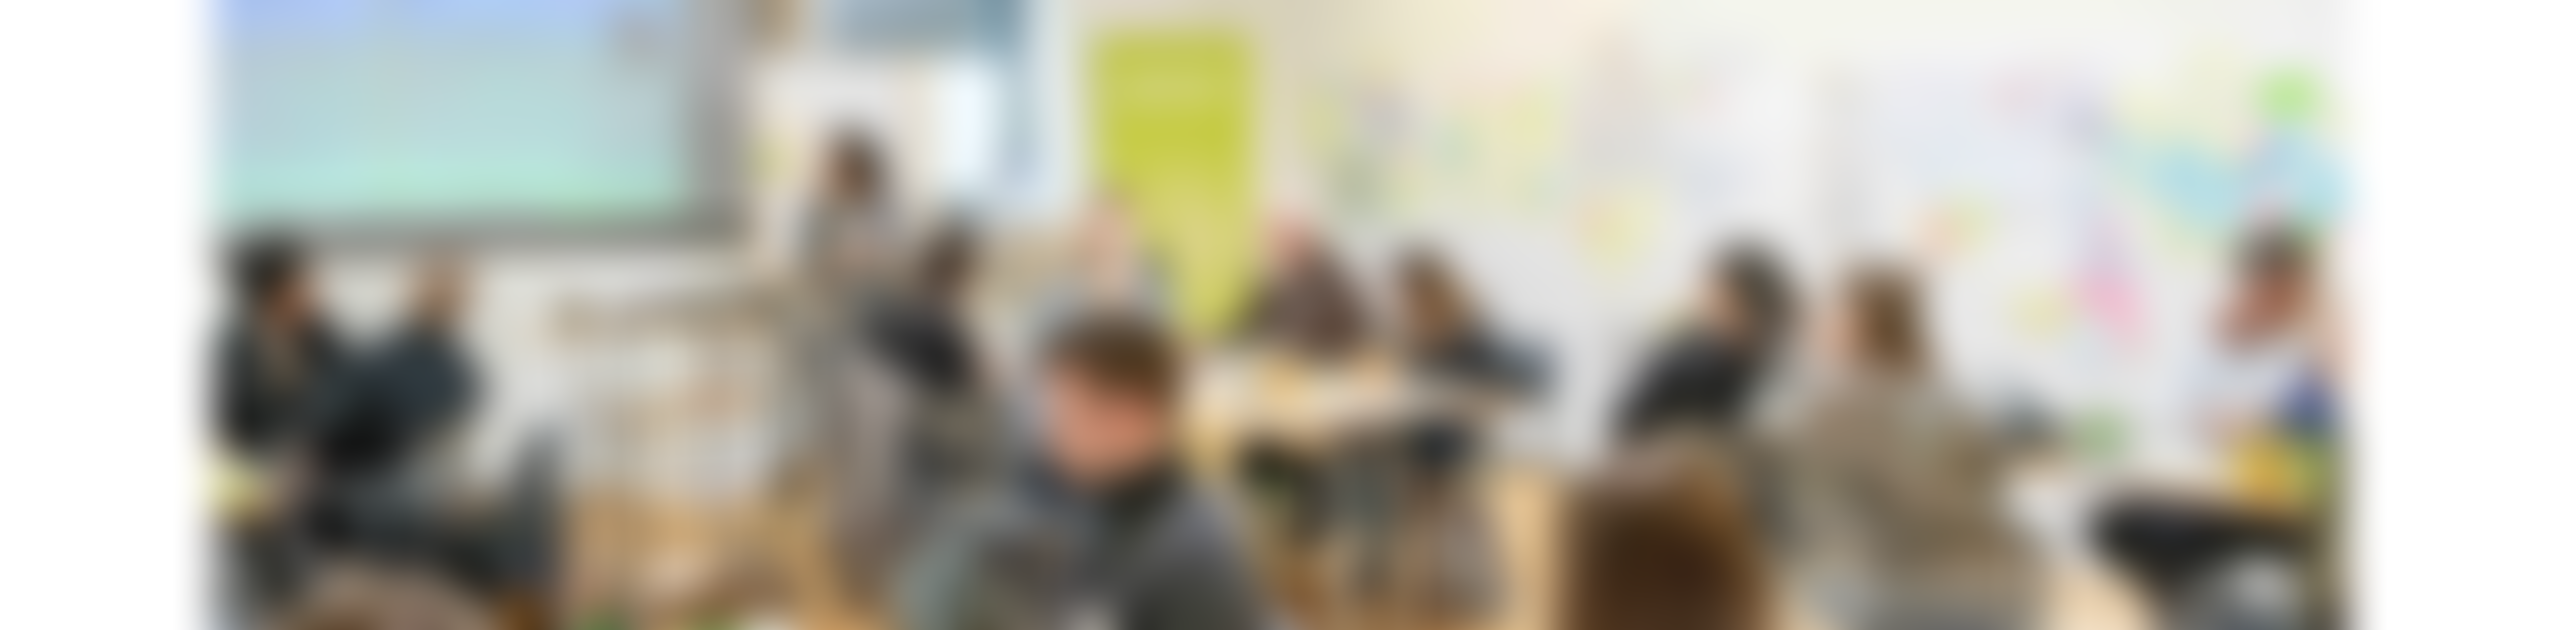 Launching the SDN Academy – ANew Initiative of the Service Design Network